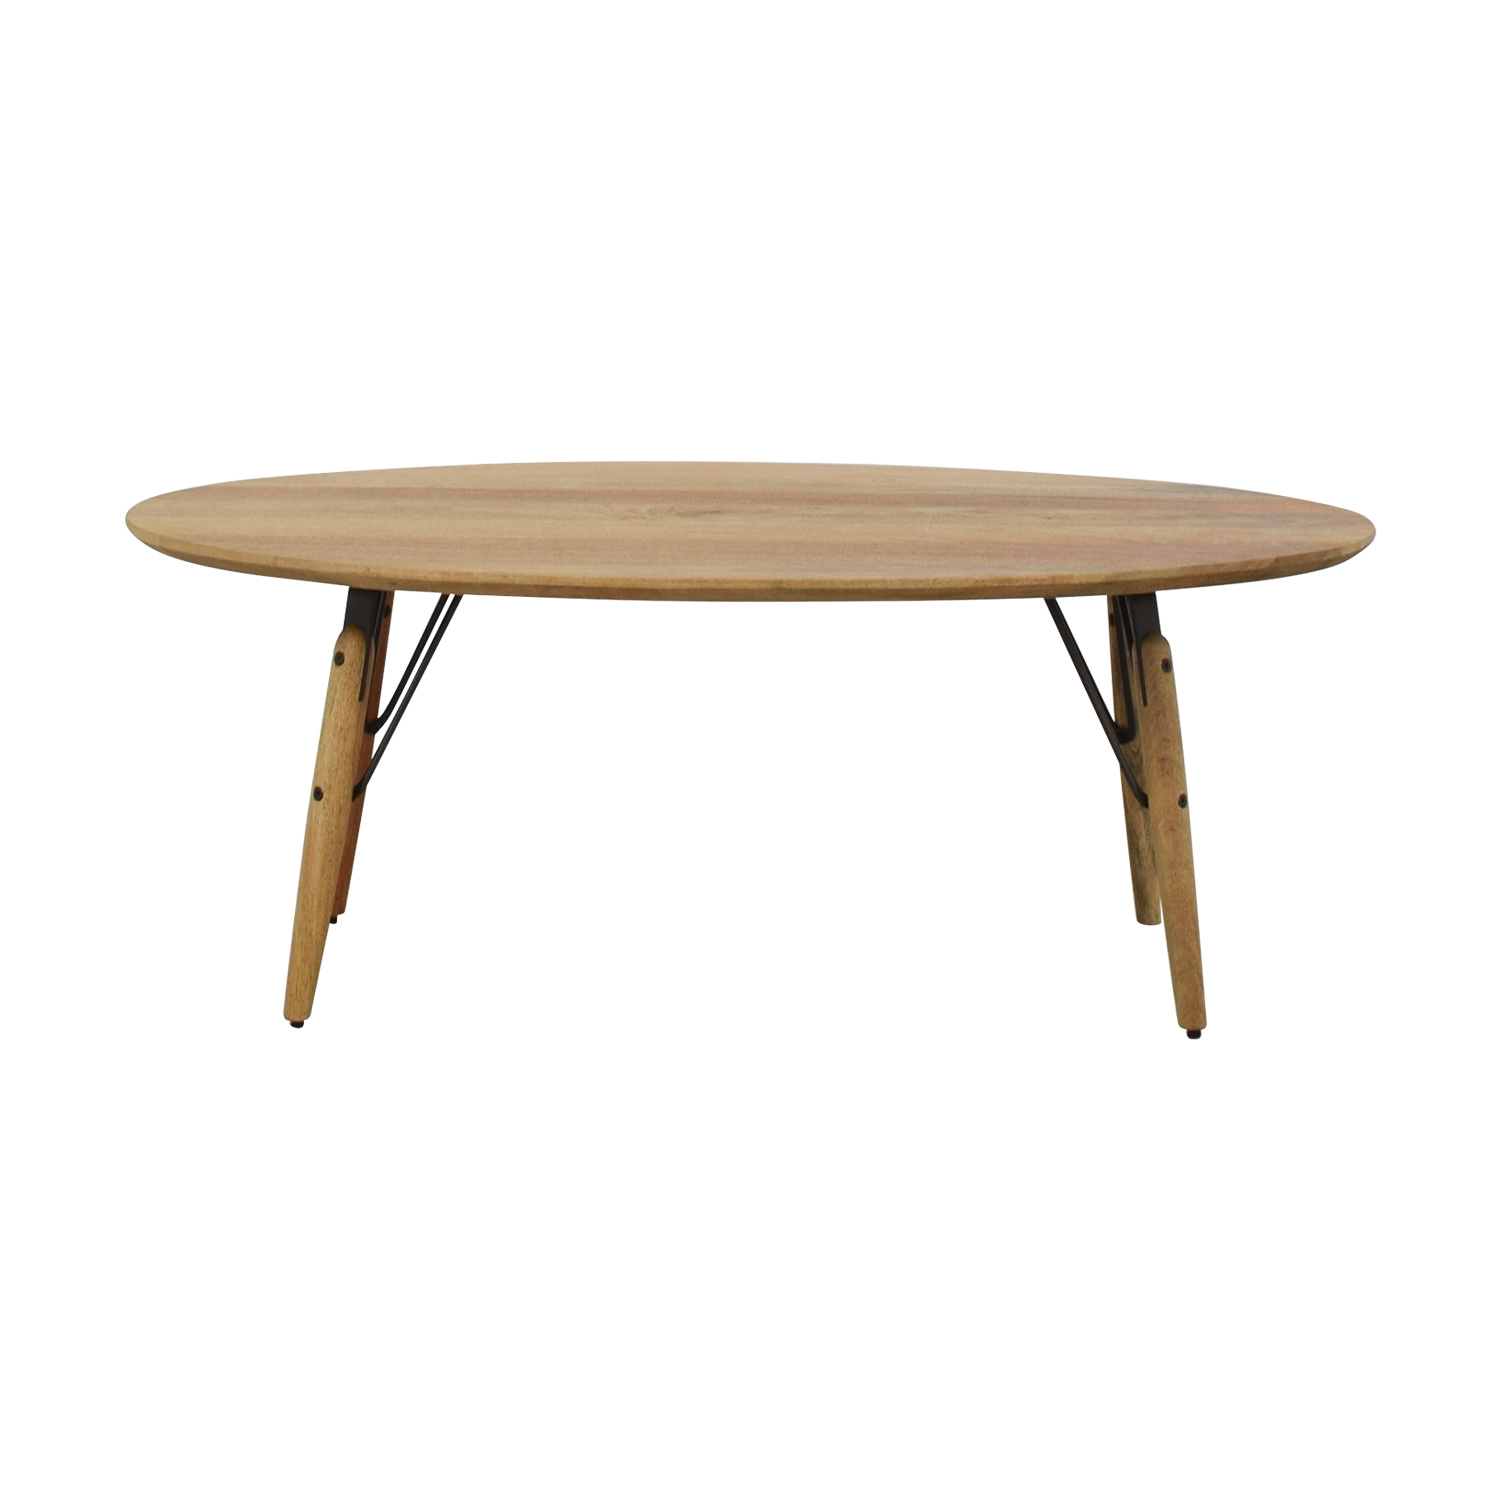 West Elm West Elm Graphica Oval Coffee Table Raw Mango nyc